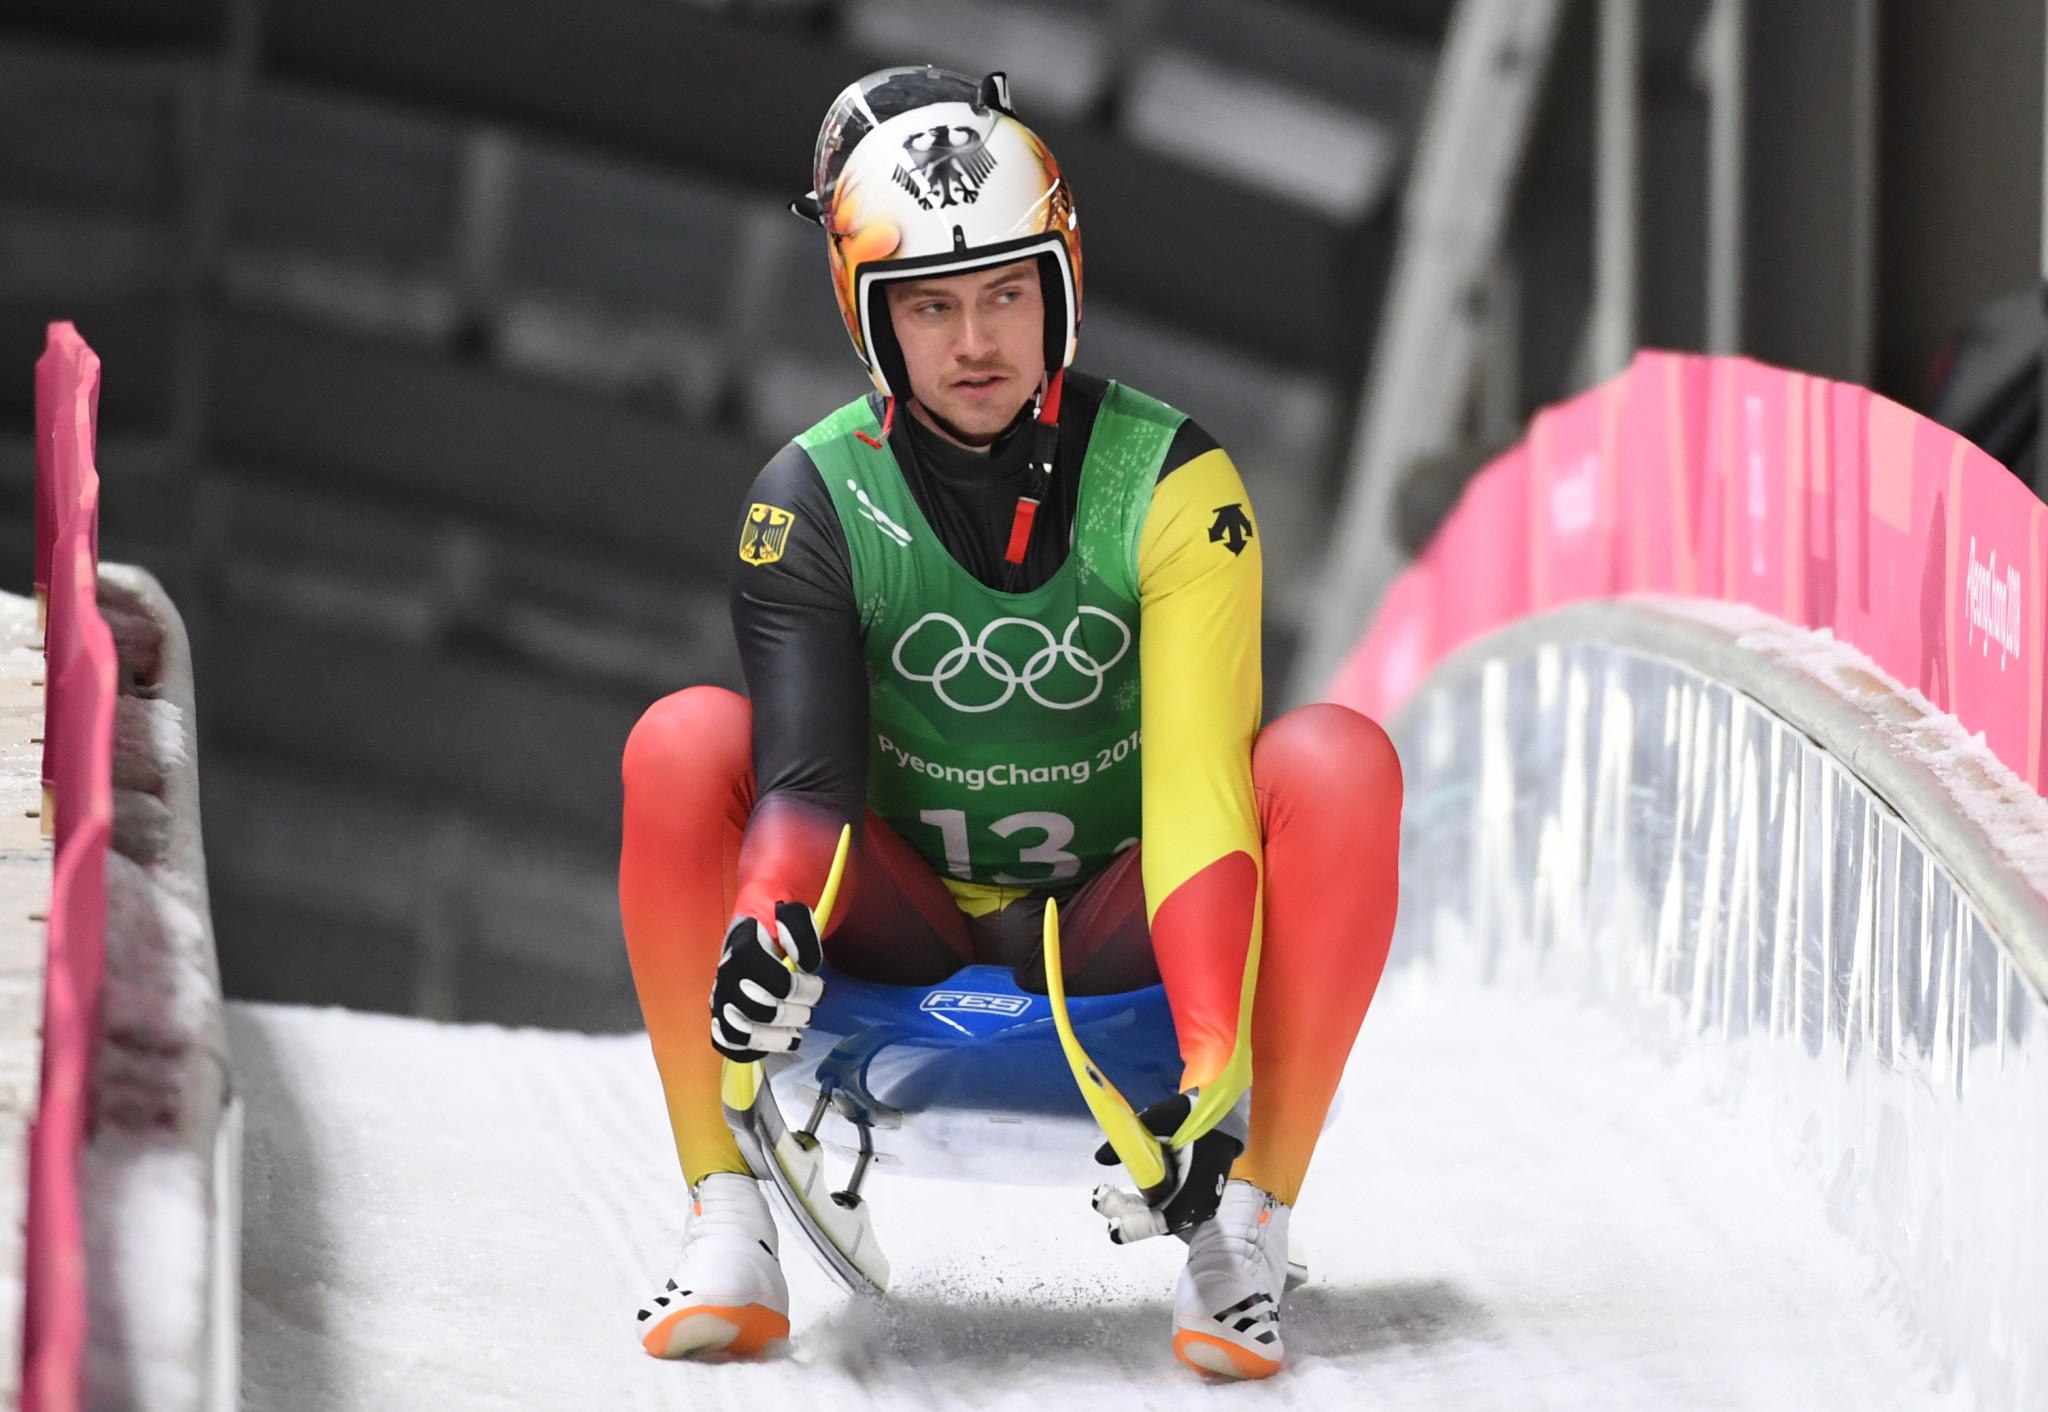 Olympic champion finishes off podium at home Luge World Cup